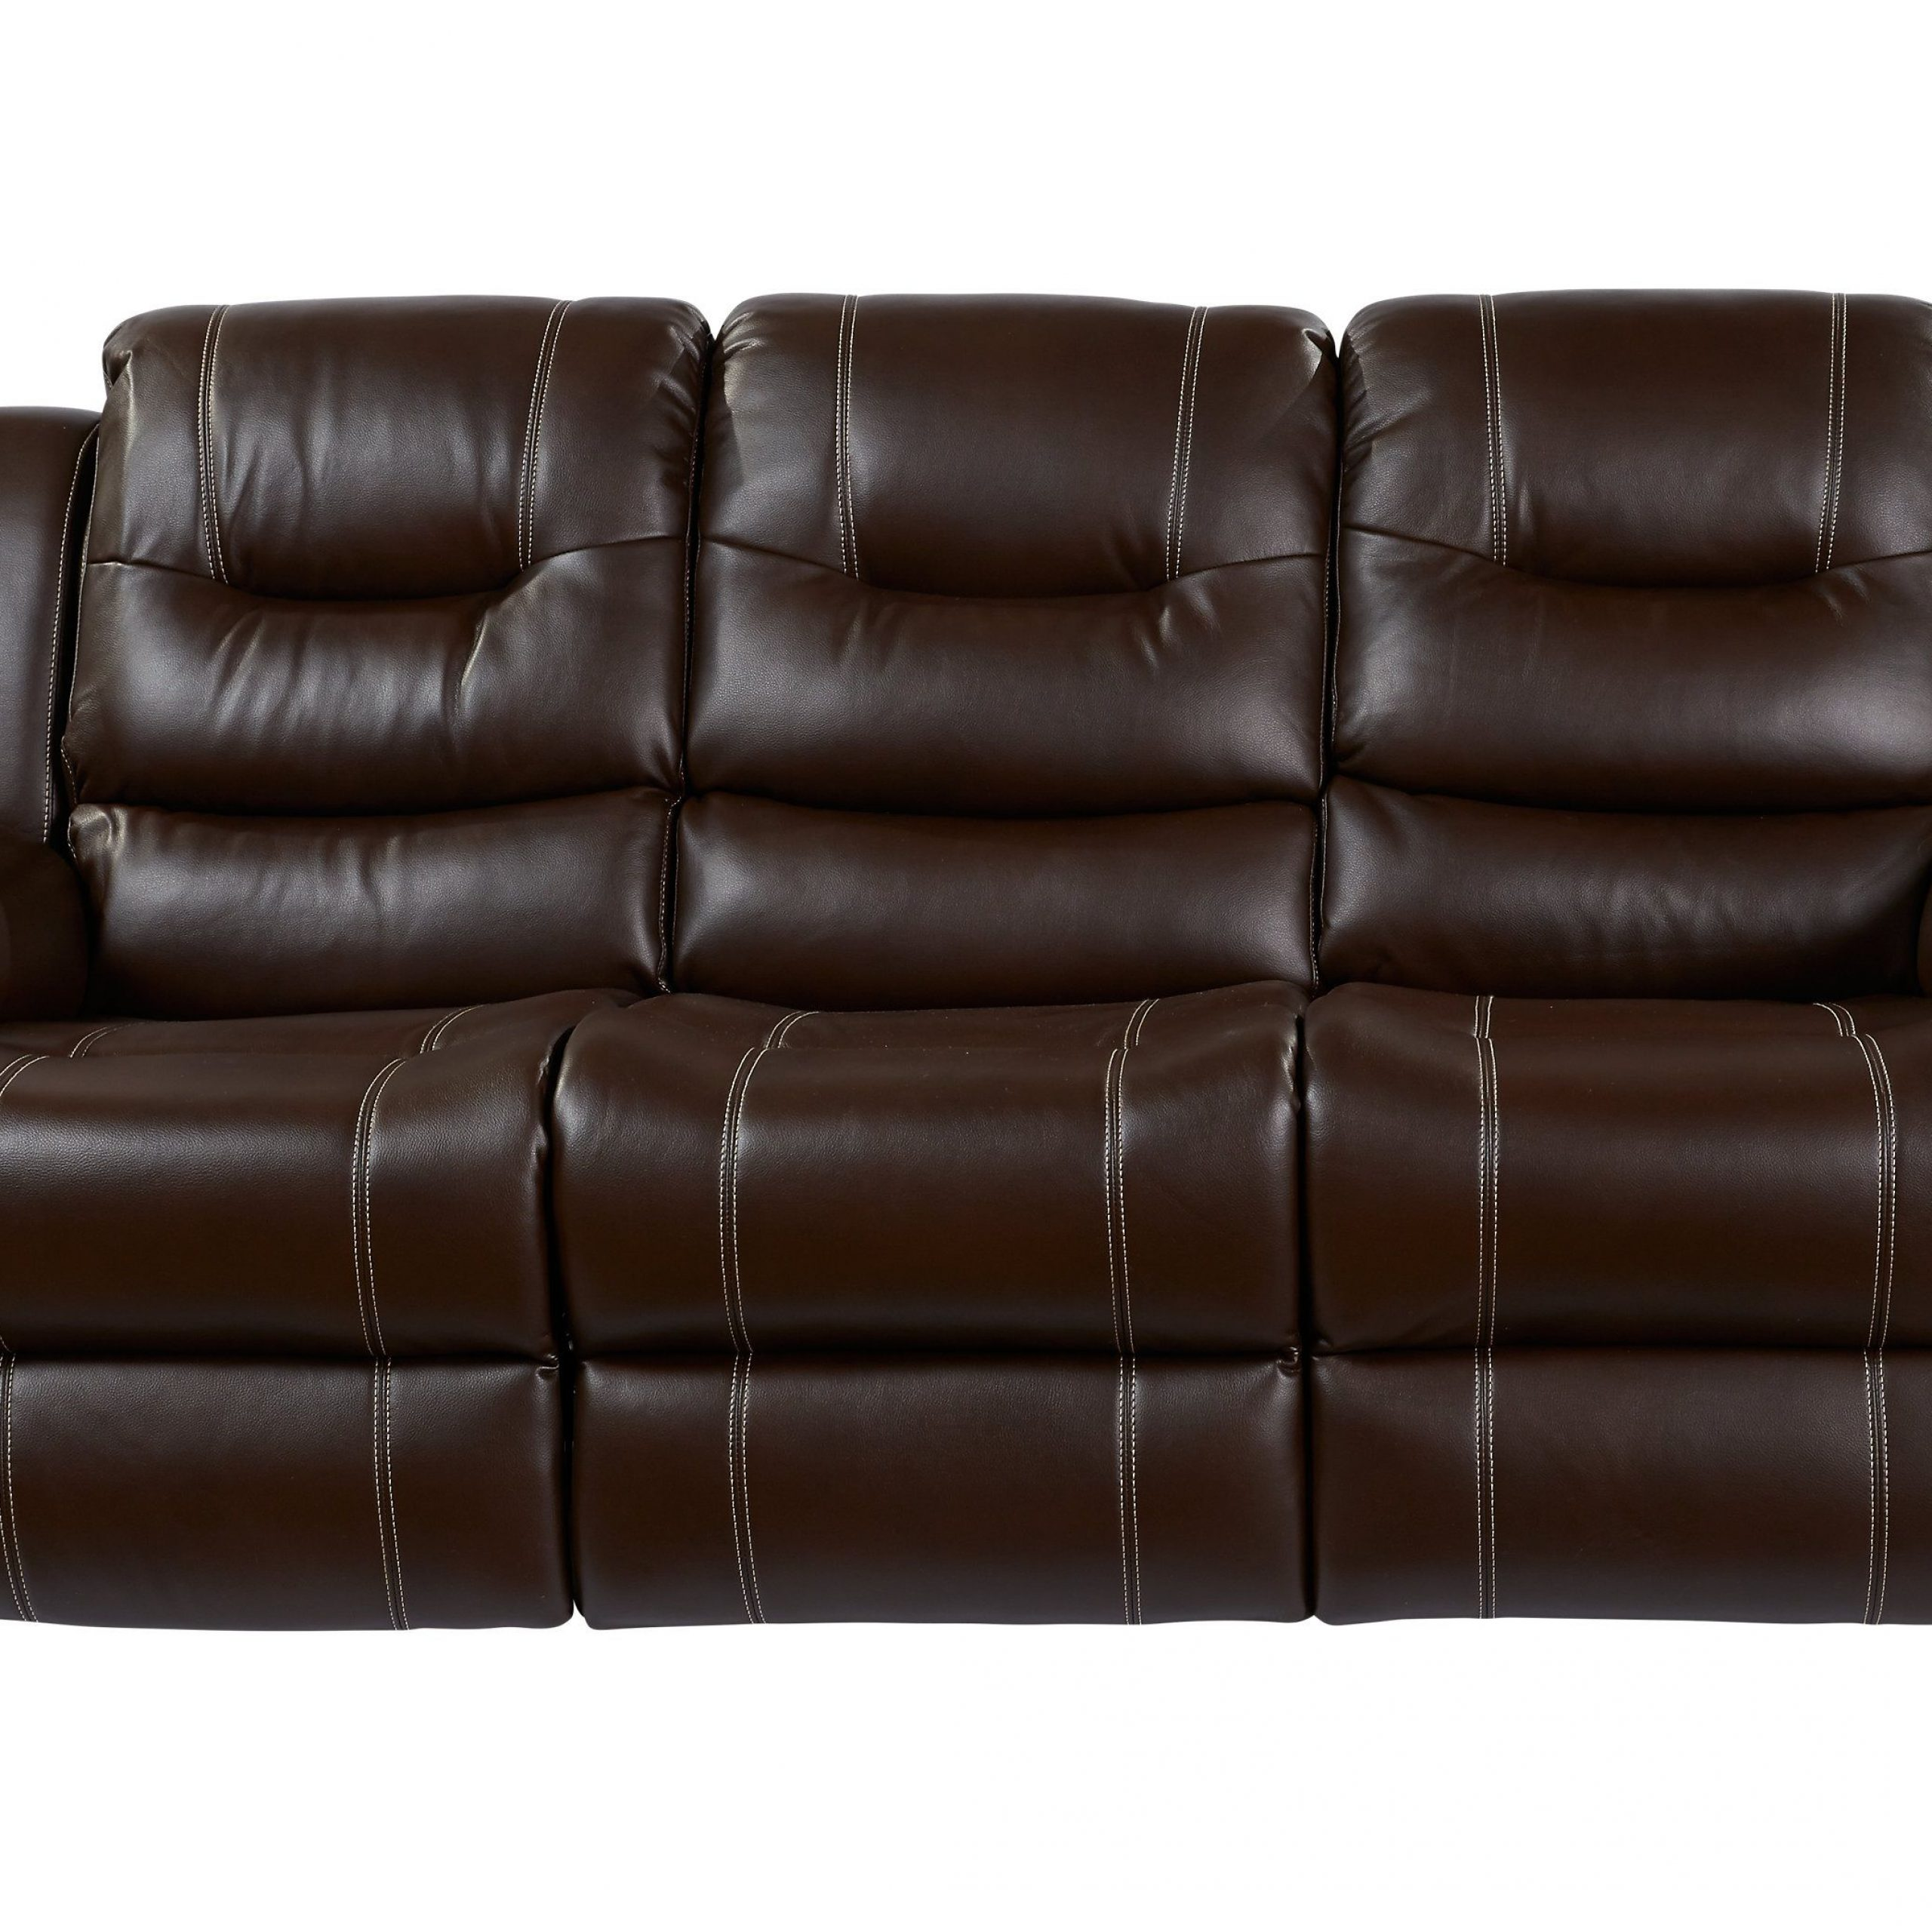 Well Liked Brown Leather Sofa Living Room, Reclining Sofa, Affordable In Marco Leather Power Reclining Sofas (View 7 of 15)